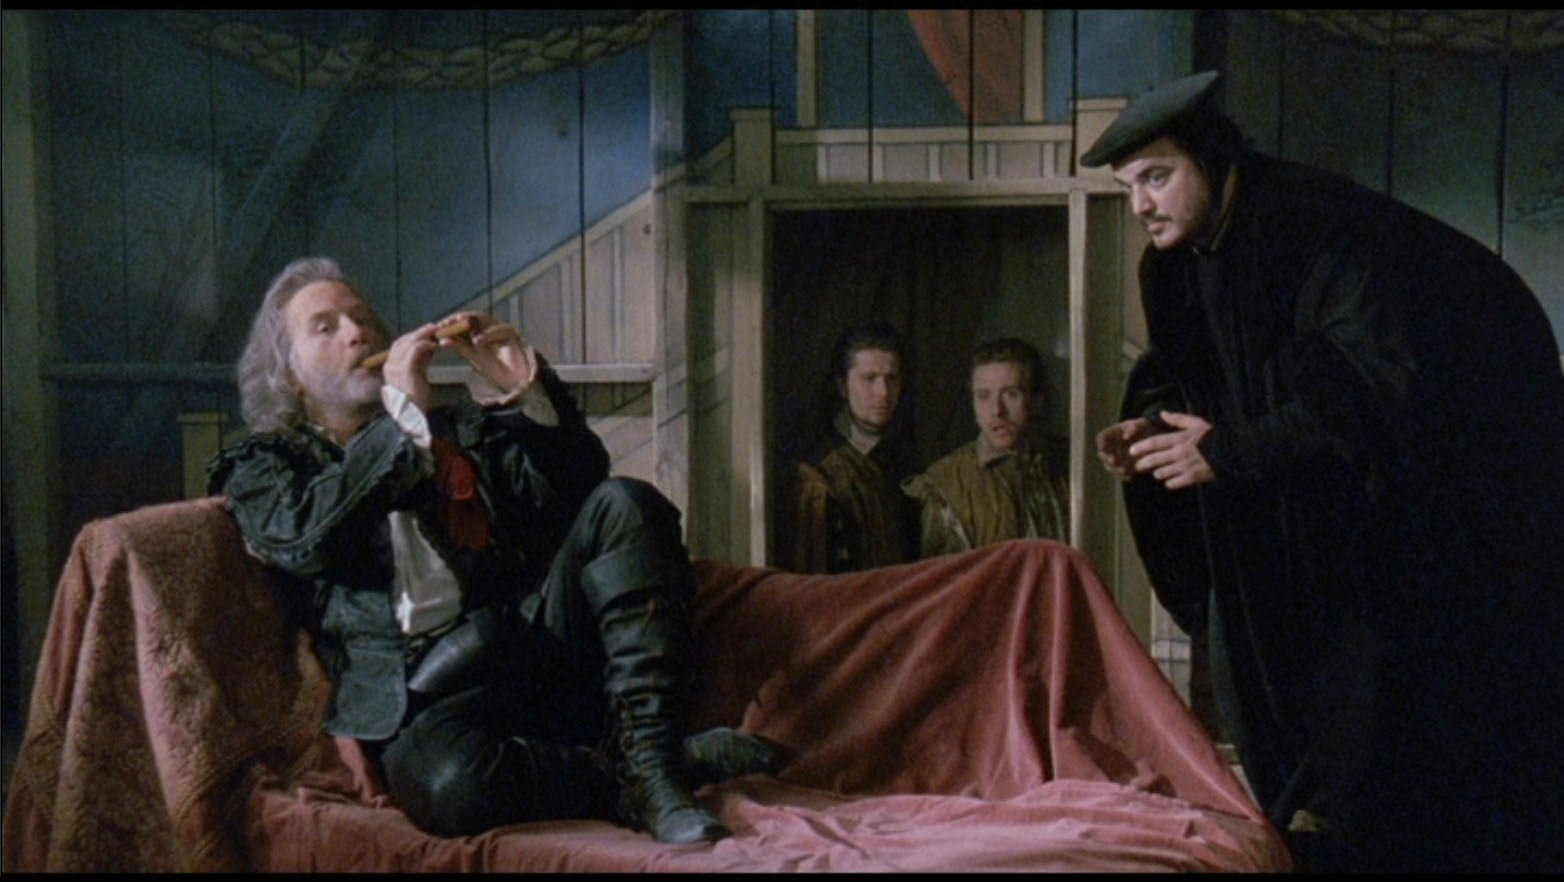 a comparison of tom stoppards rosencrantz and guildenstern are dead and shakespeares hamlet A summary of themes in tom stoppard's rosencrantz and guildenstern are dead learn exactly what happened in this chapter, scene, or section of rosencrantz and guildenstern are dead and what it means.